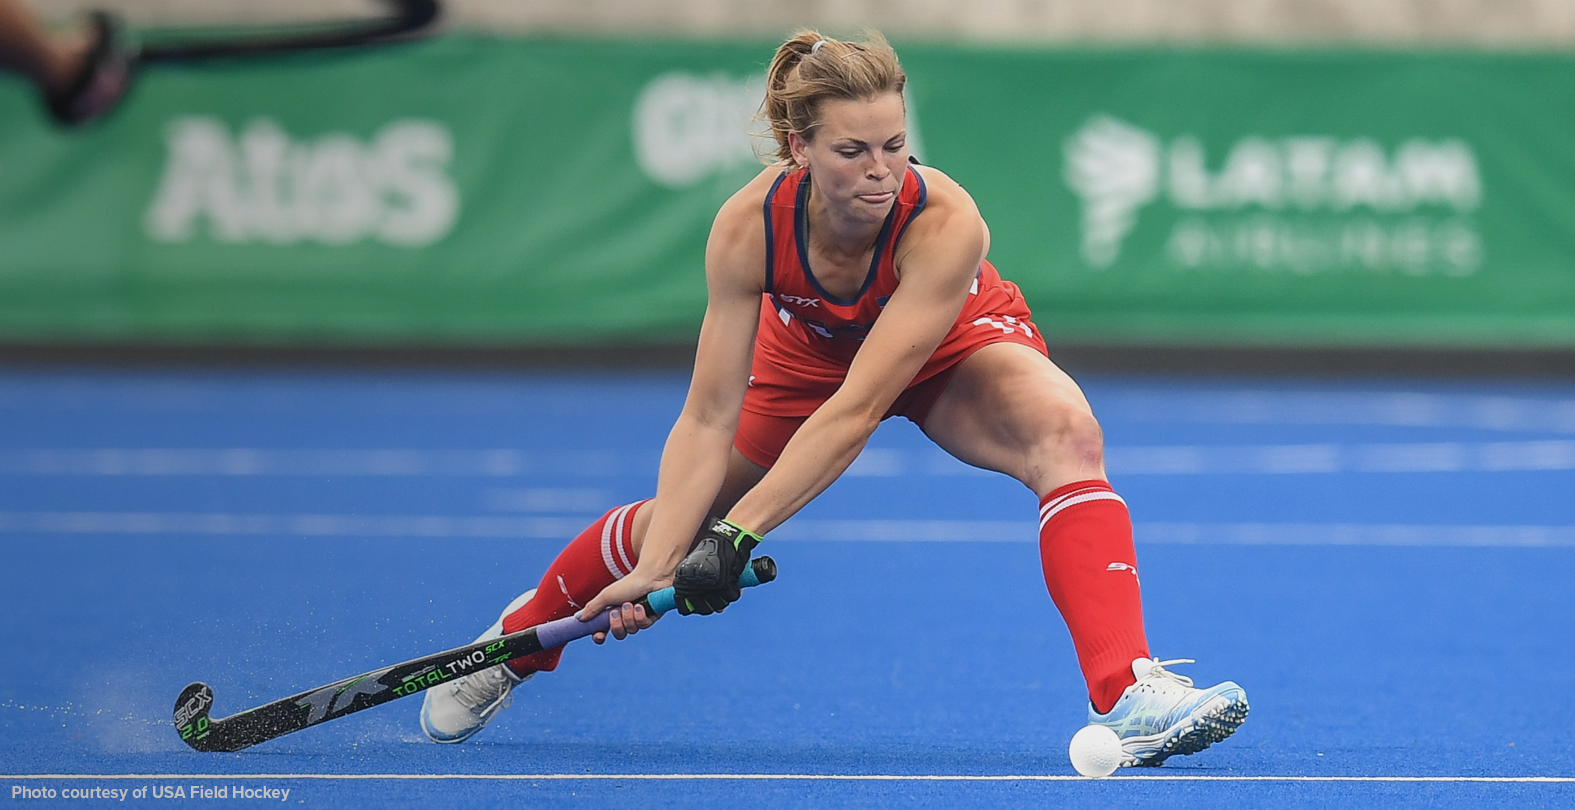 Julia Young - Field Hockey Player - US National Team